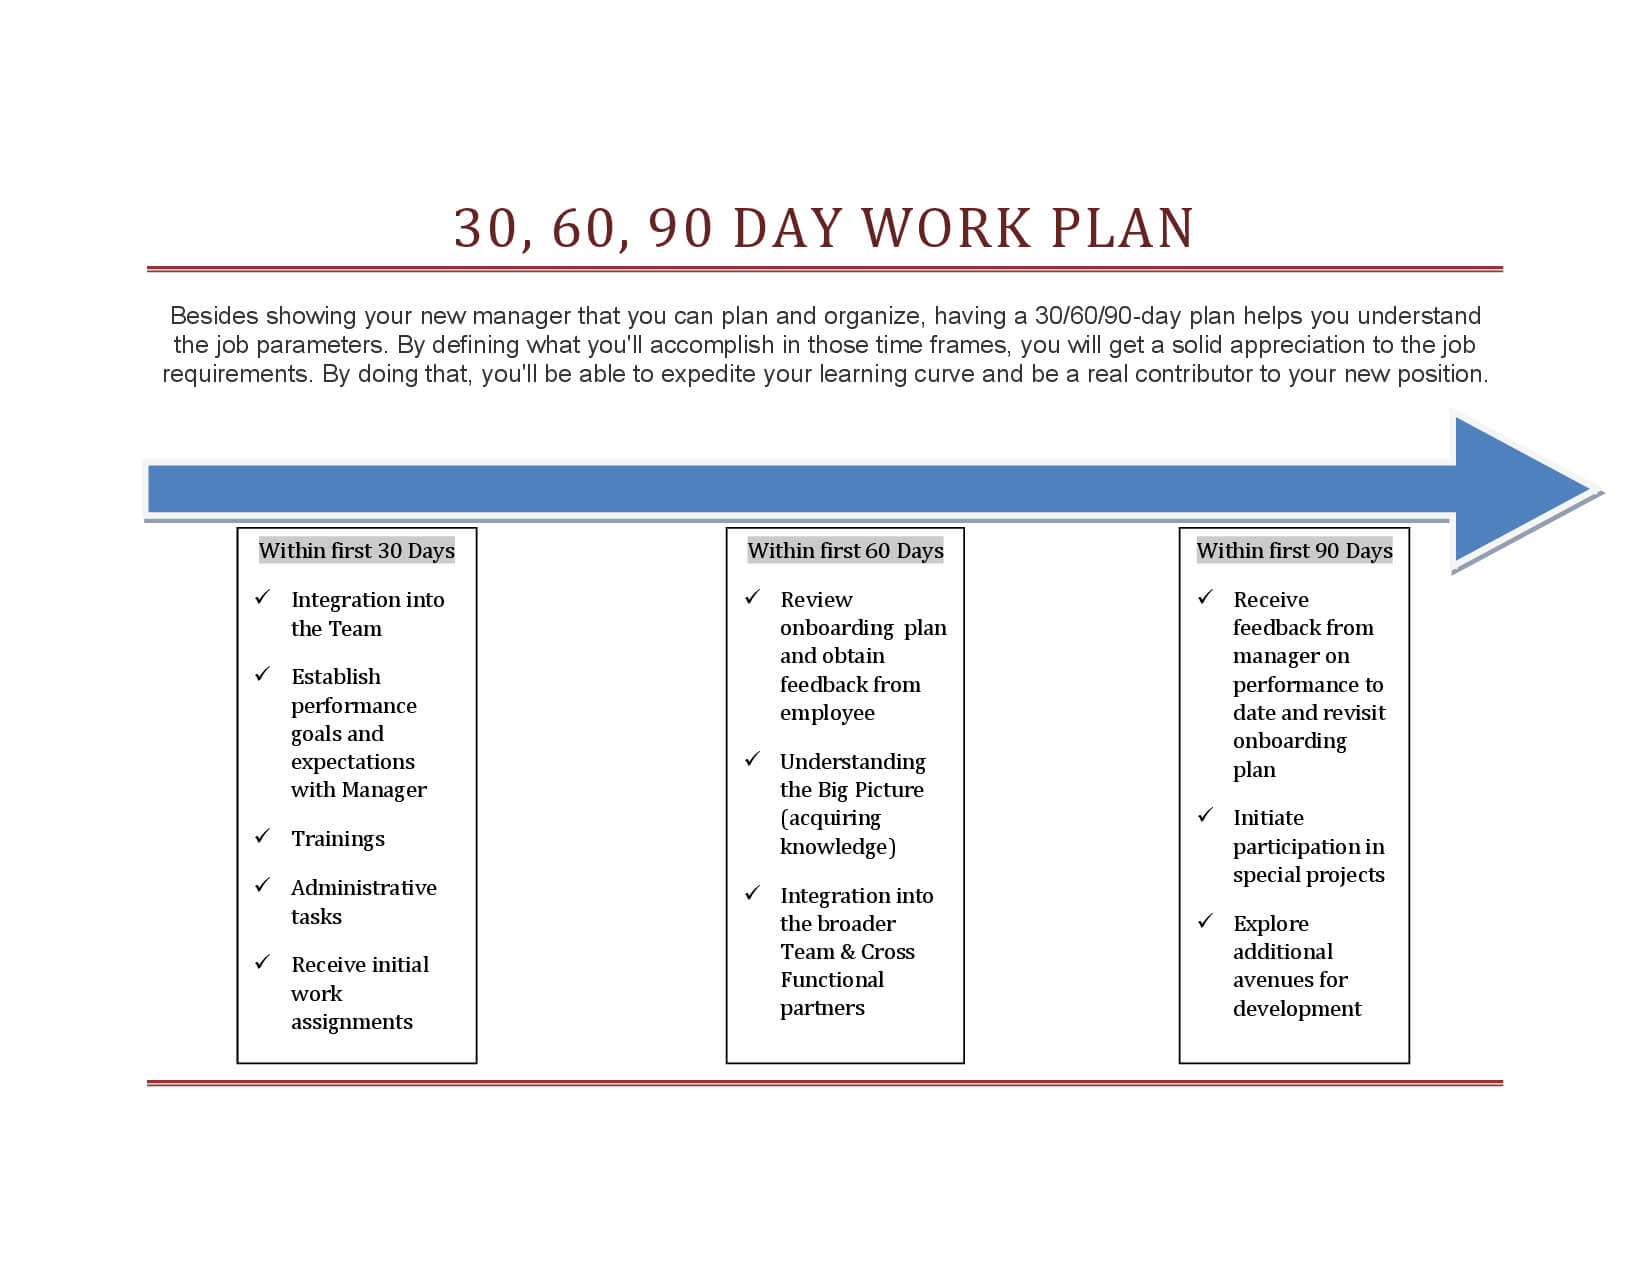 30 60 90 Day Work Plan Template | 90 Day Plan, Marketing Within 30 60 90 Day Plan Template Word